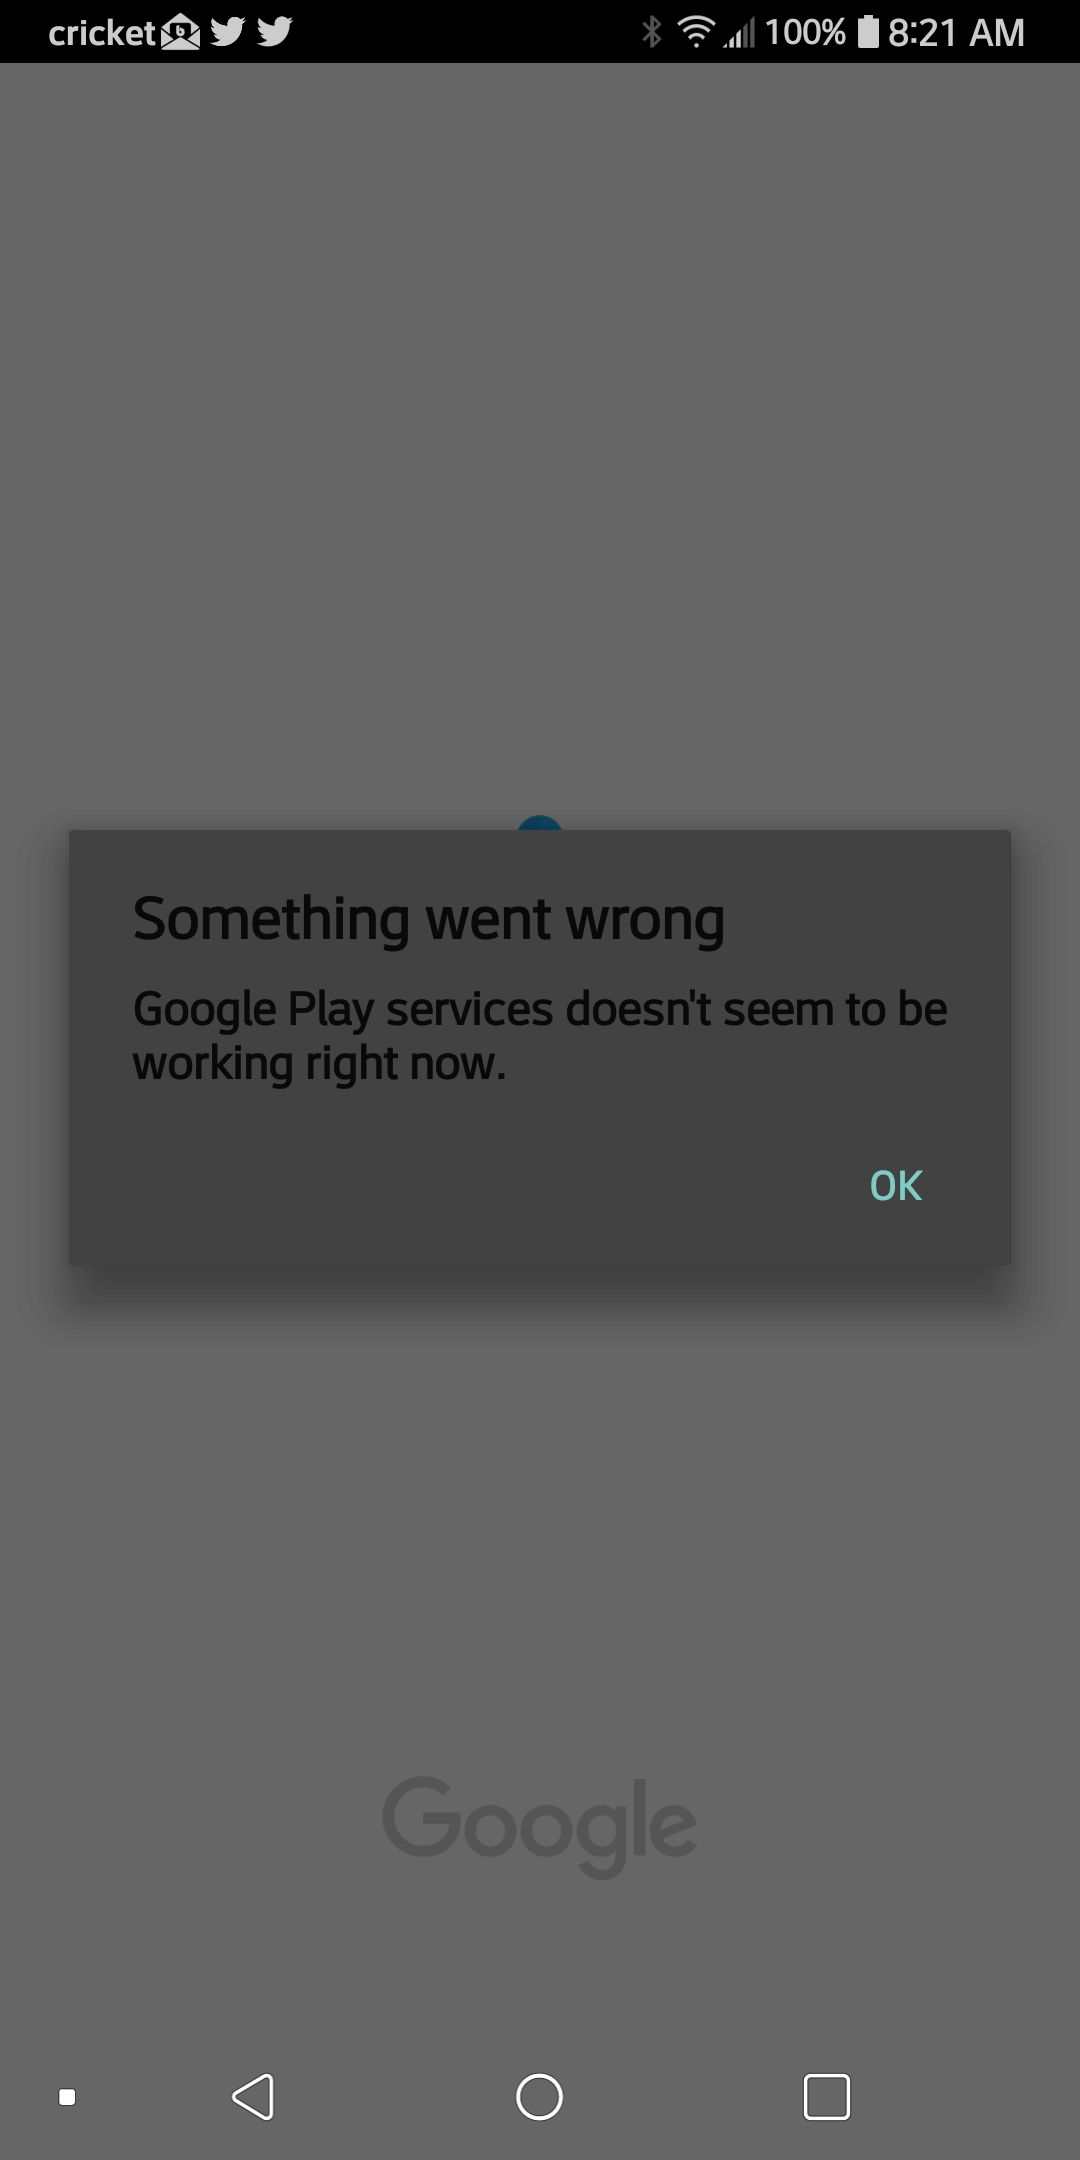 google-Play-Services-Stopped-error-how-to-fix